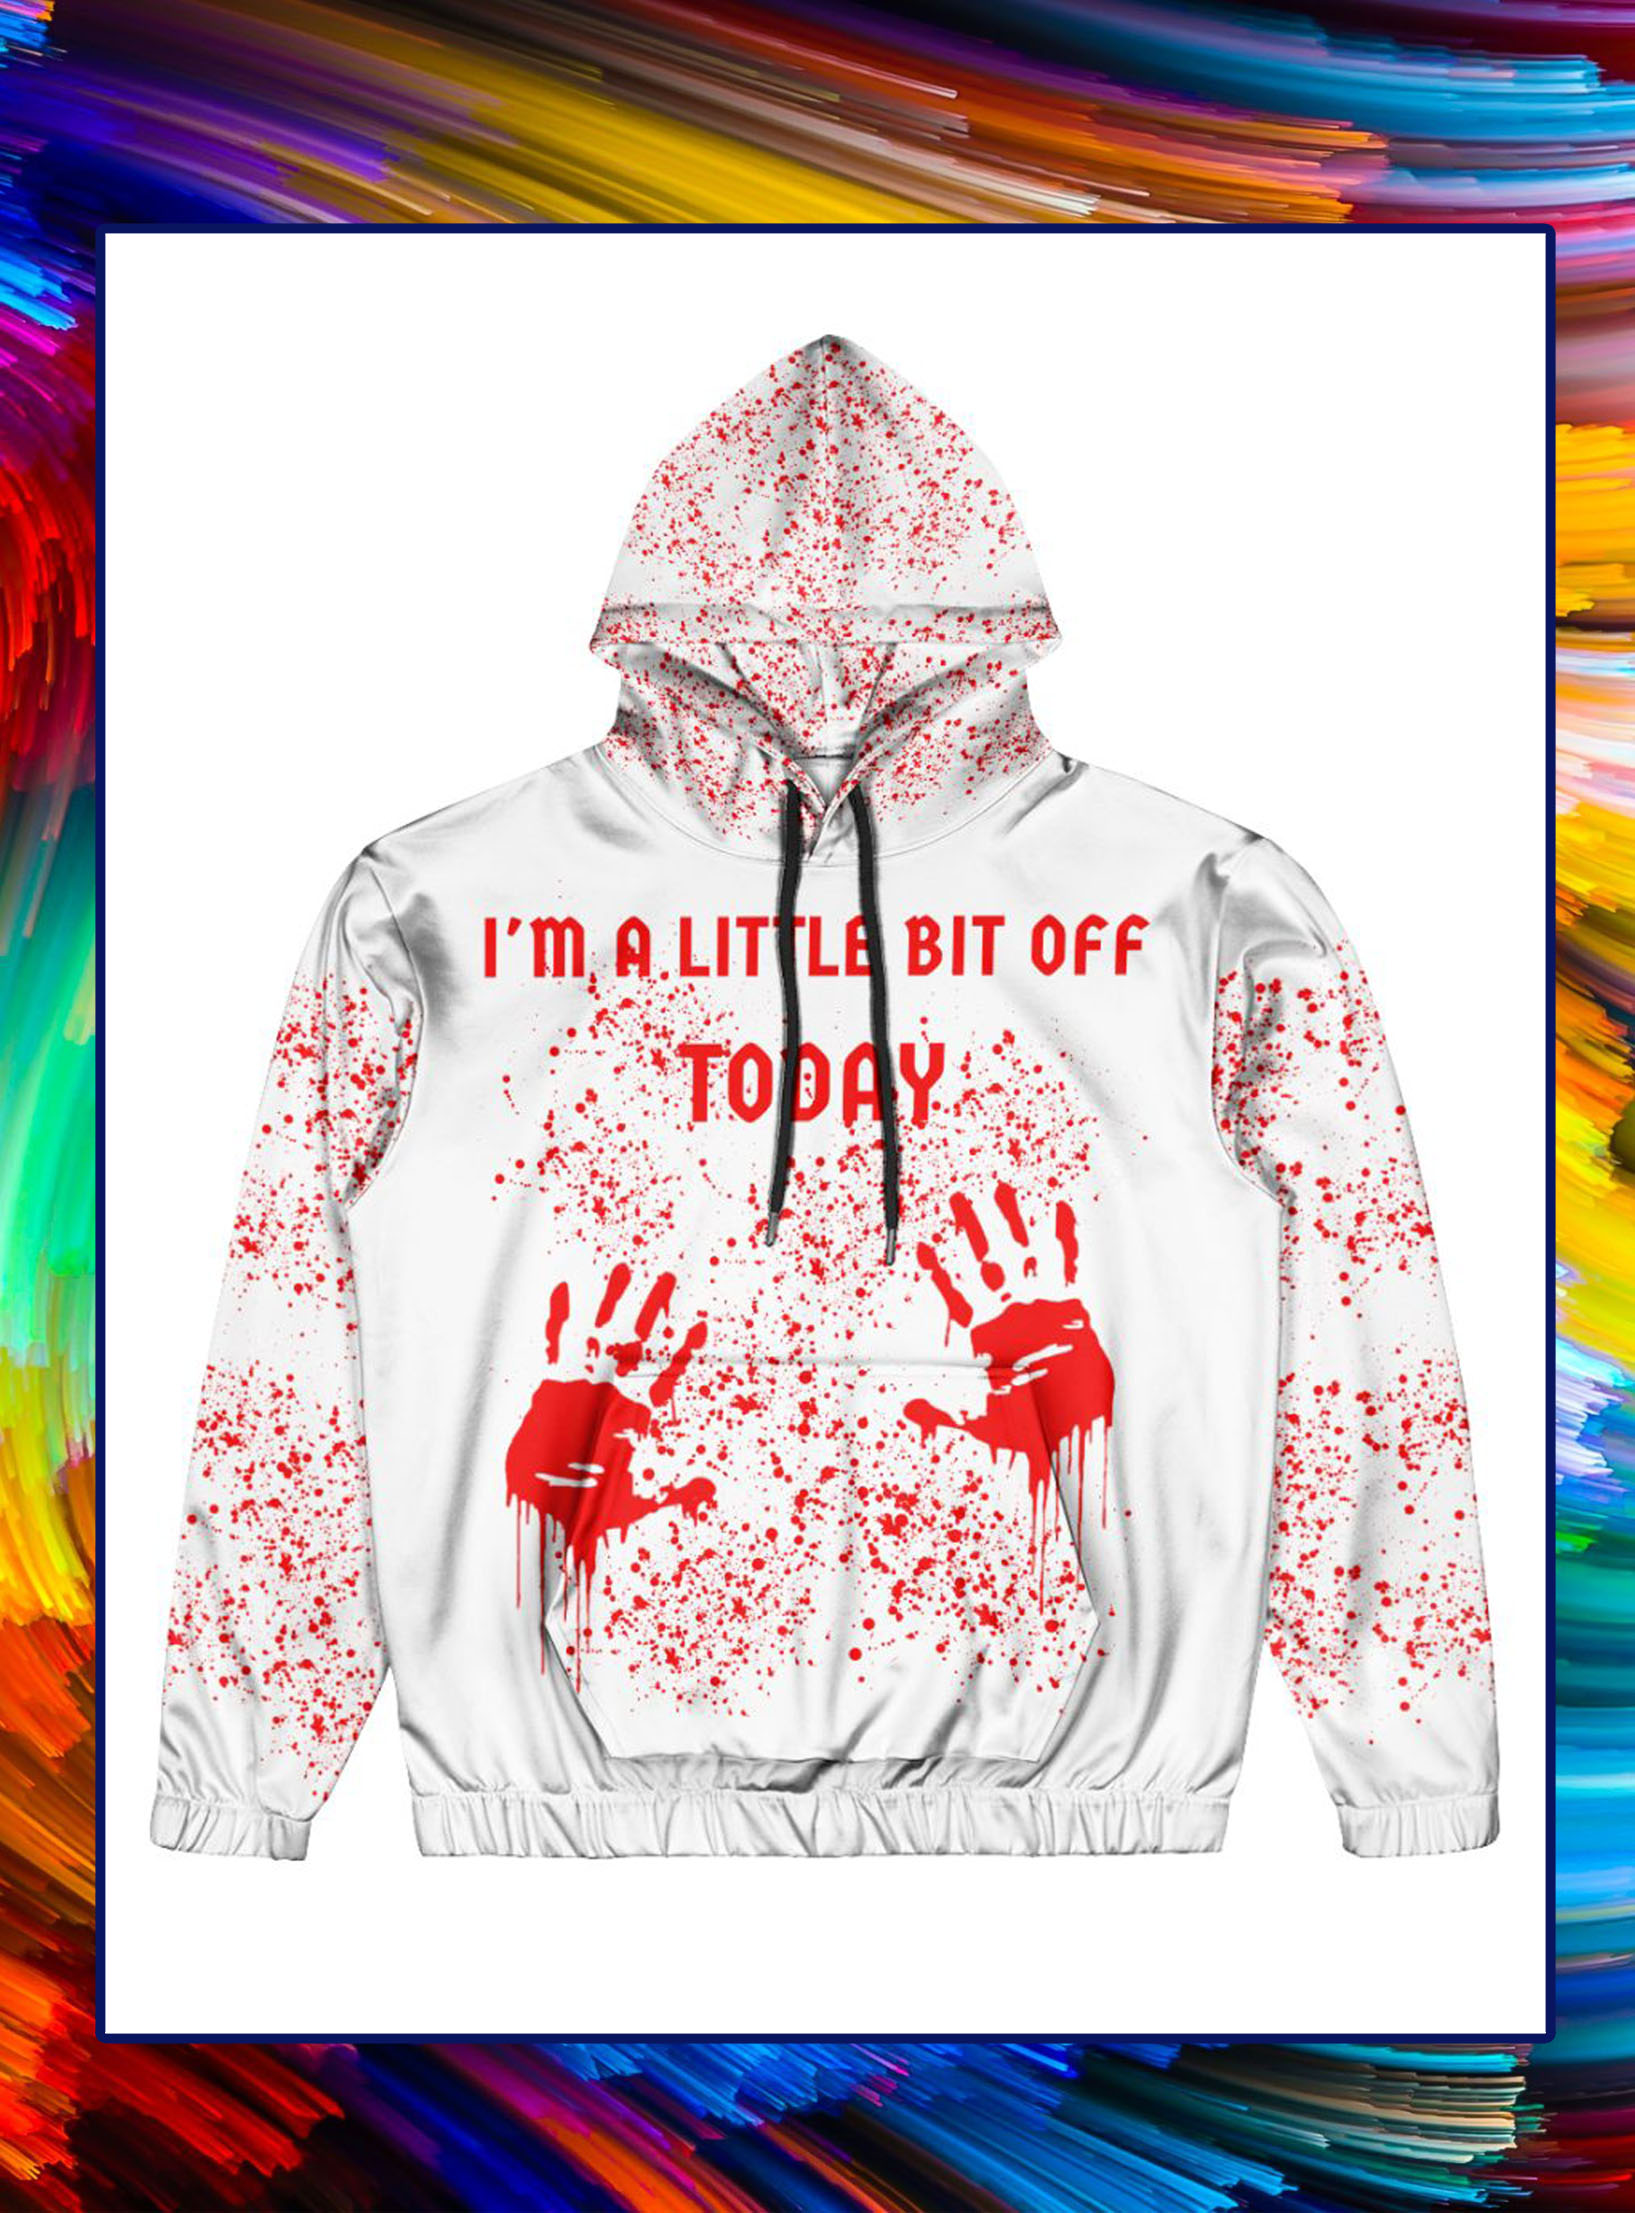 I'm a little bit off today blood all over hoodie